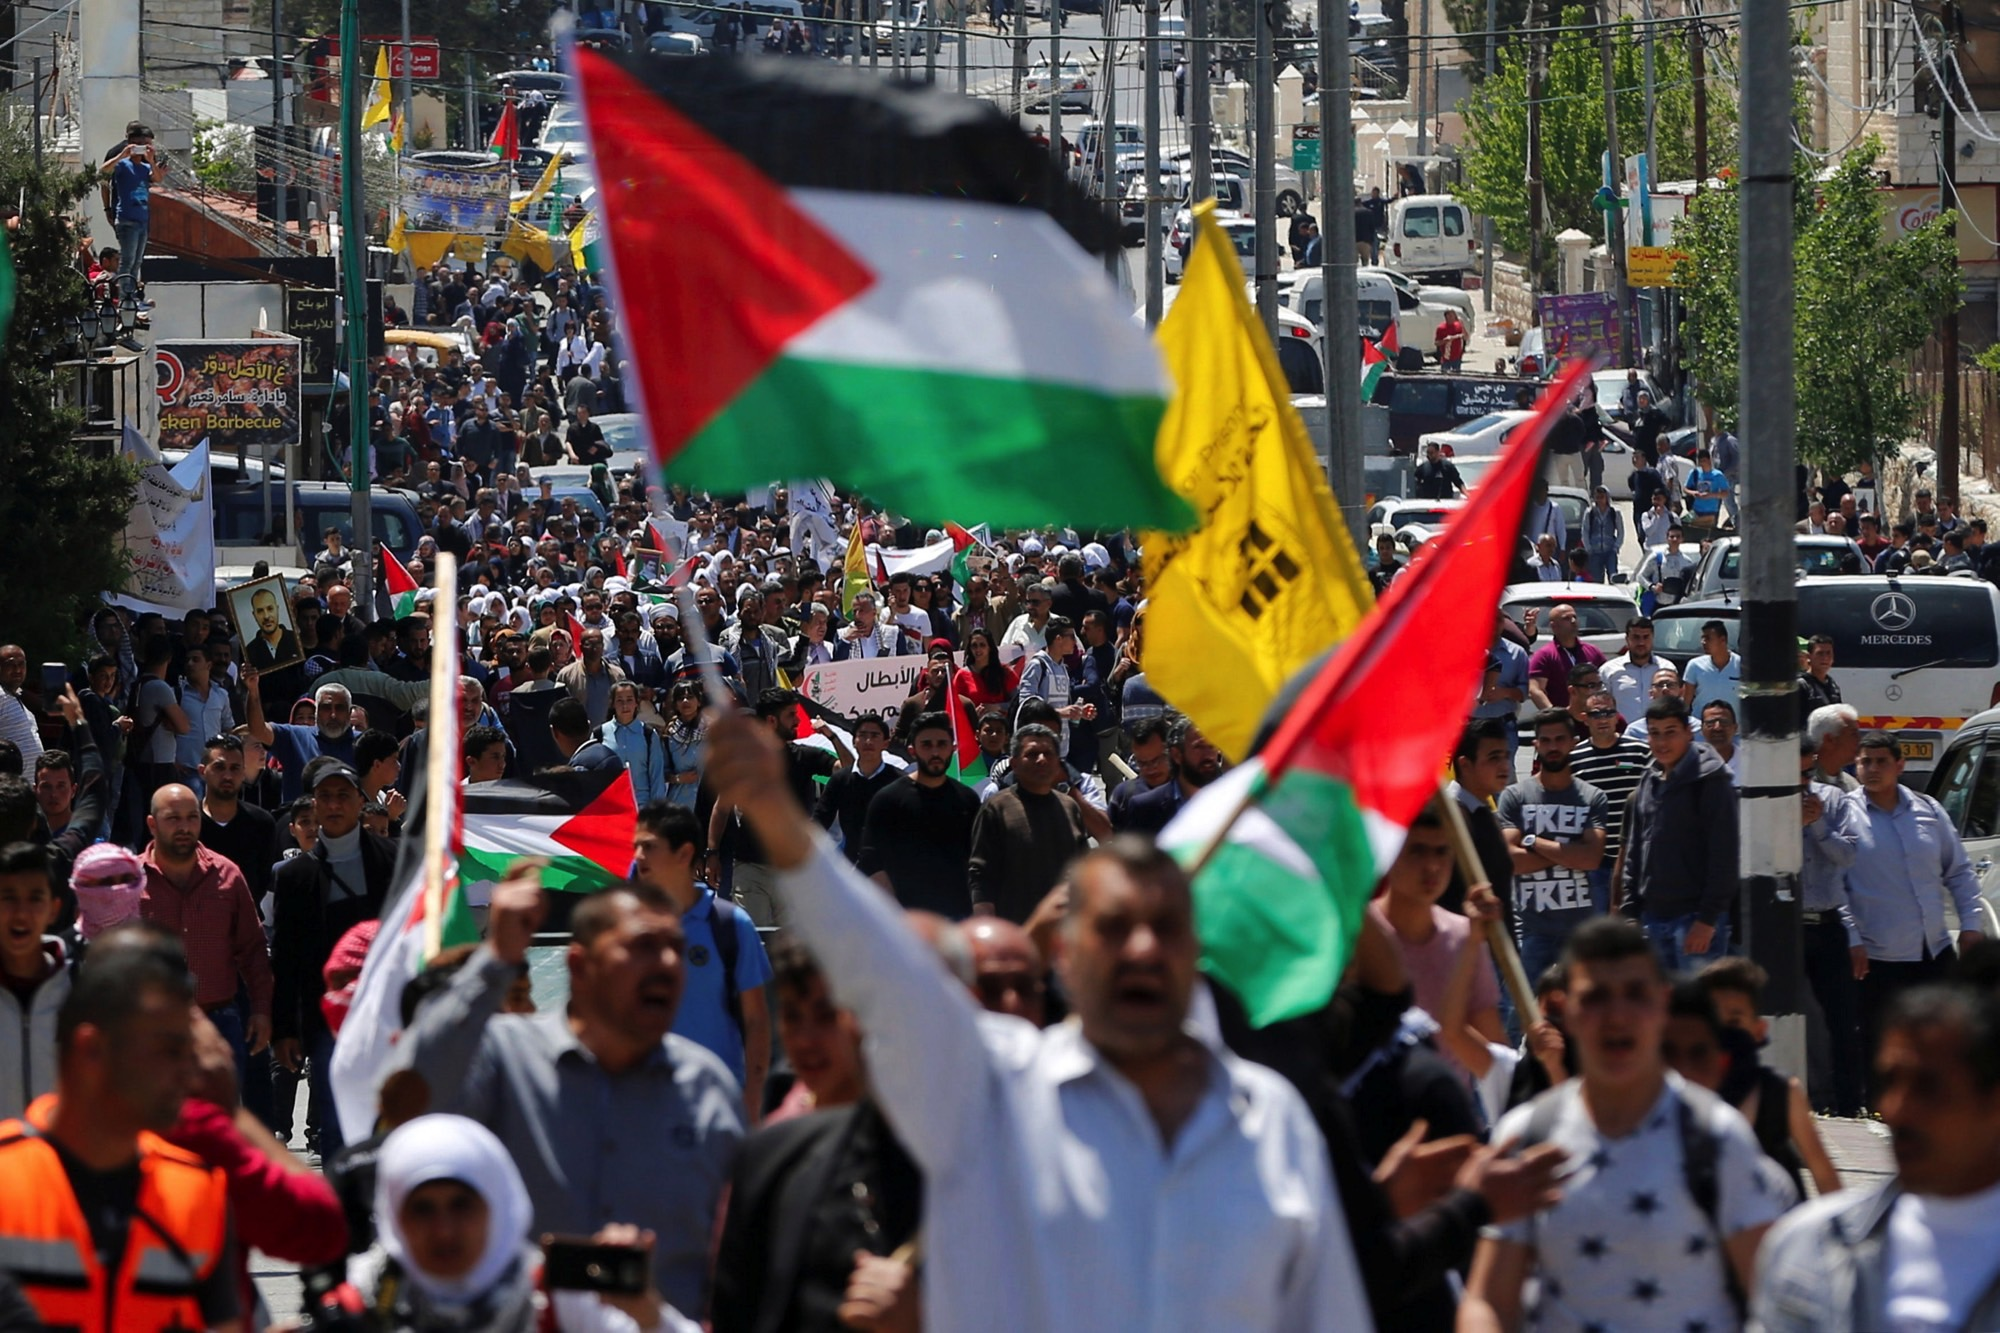 Palestinians take part in a protest in solidarity with Palestinian prisoners held by Israel, in the West Bank town of Bethlehem April 17, 2017. Credit: Reuters/Ammar Awad